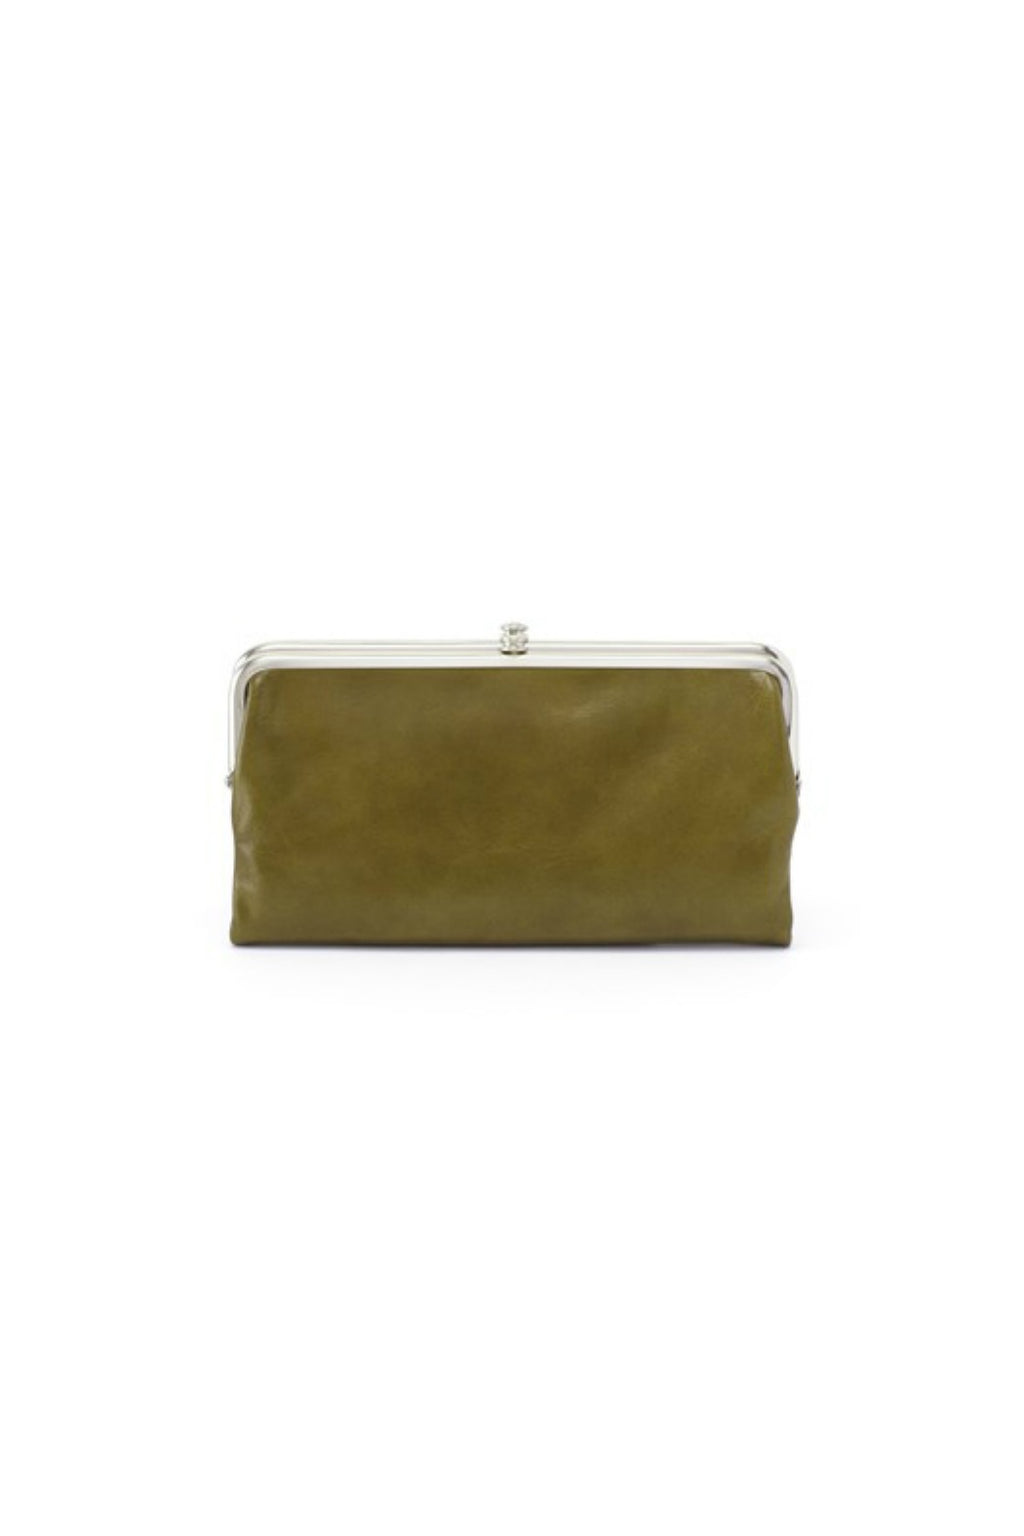 Hobo Lauren Wallet - Willow